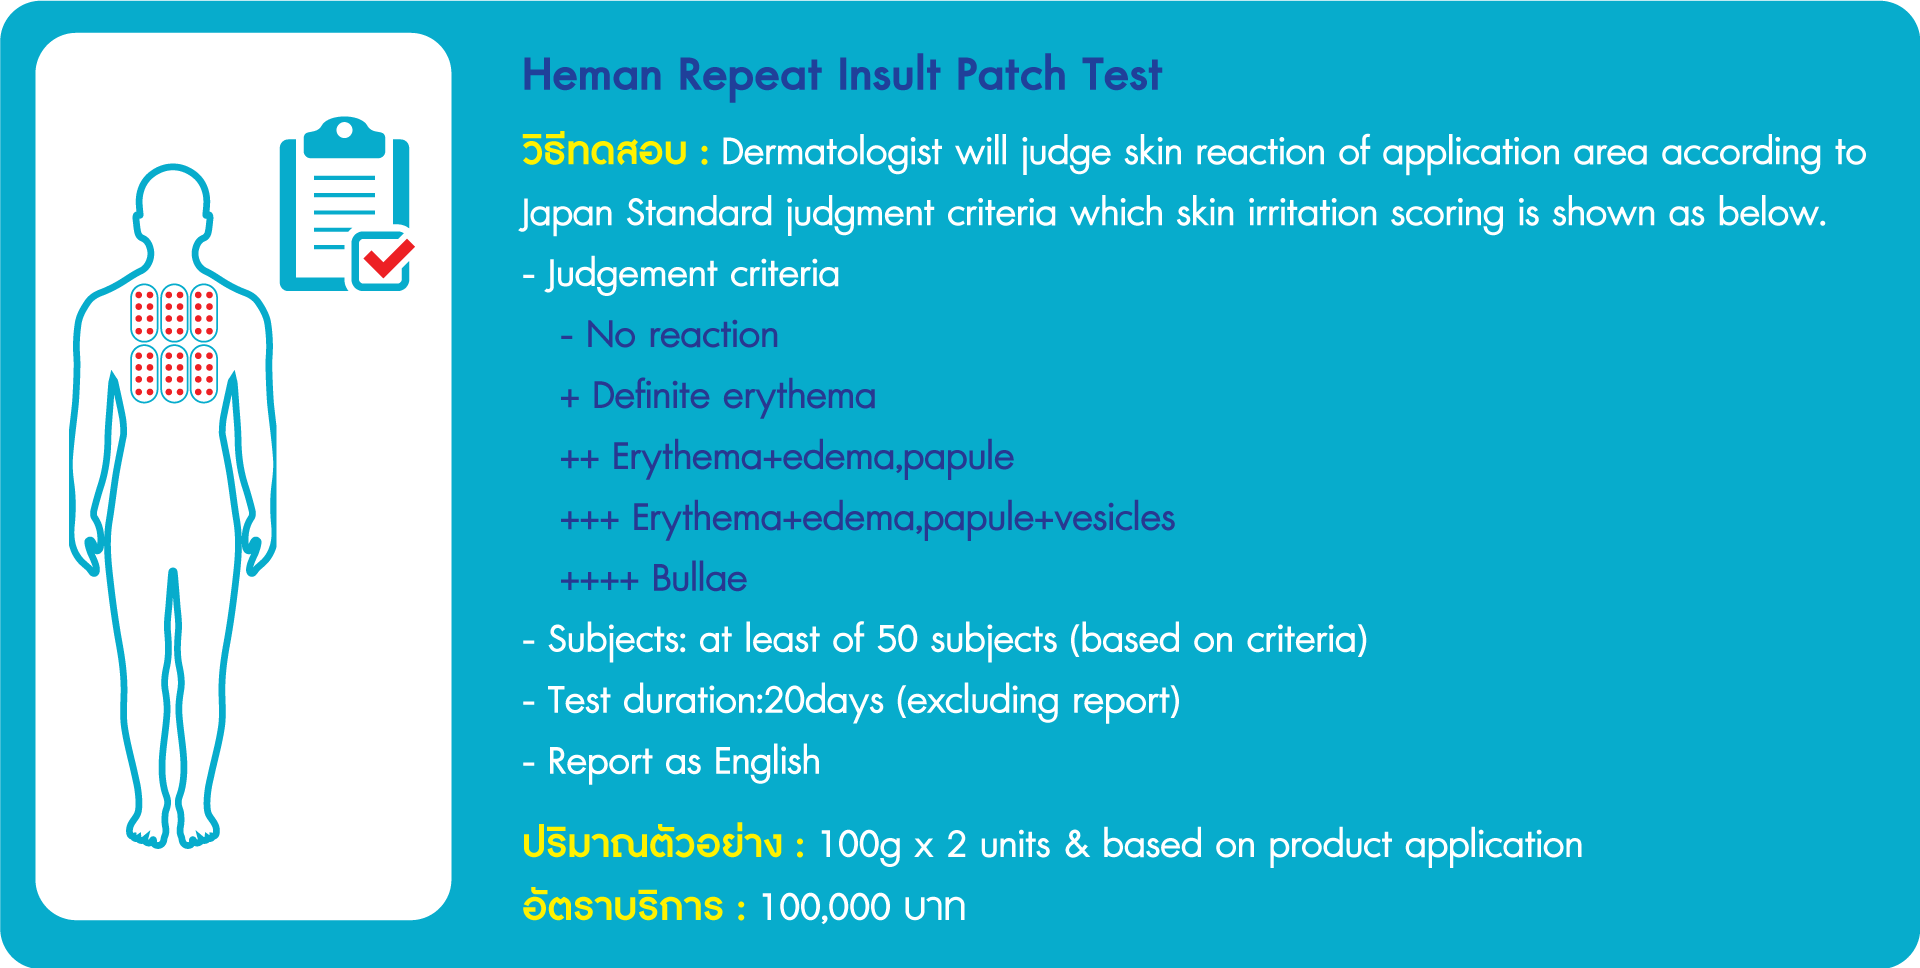 Heman Repeat Insult Patch Test